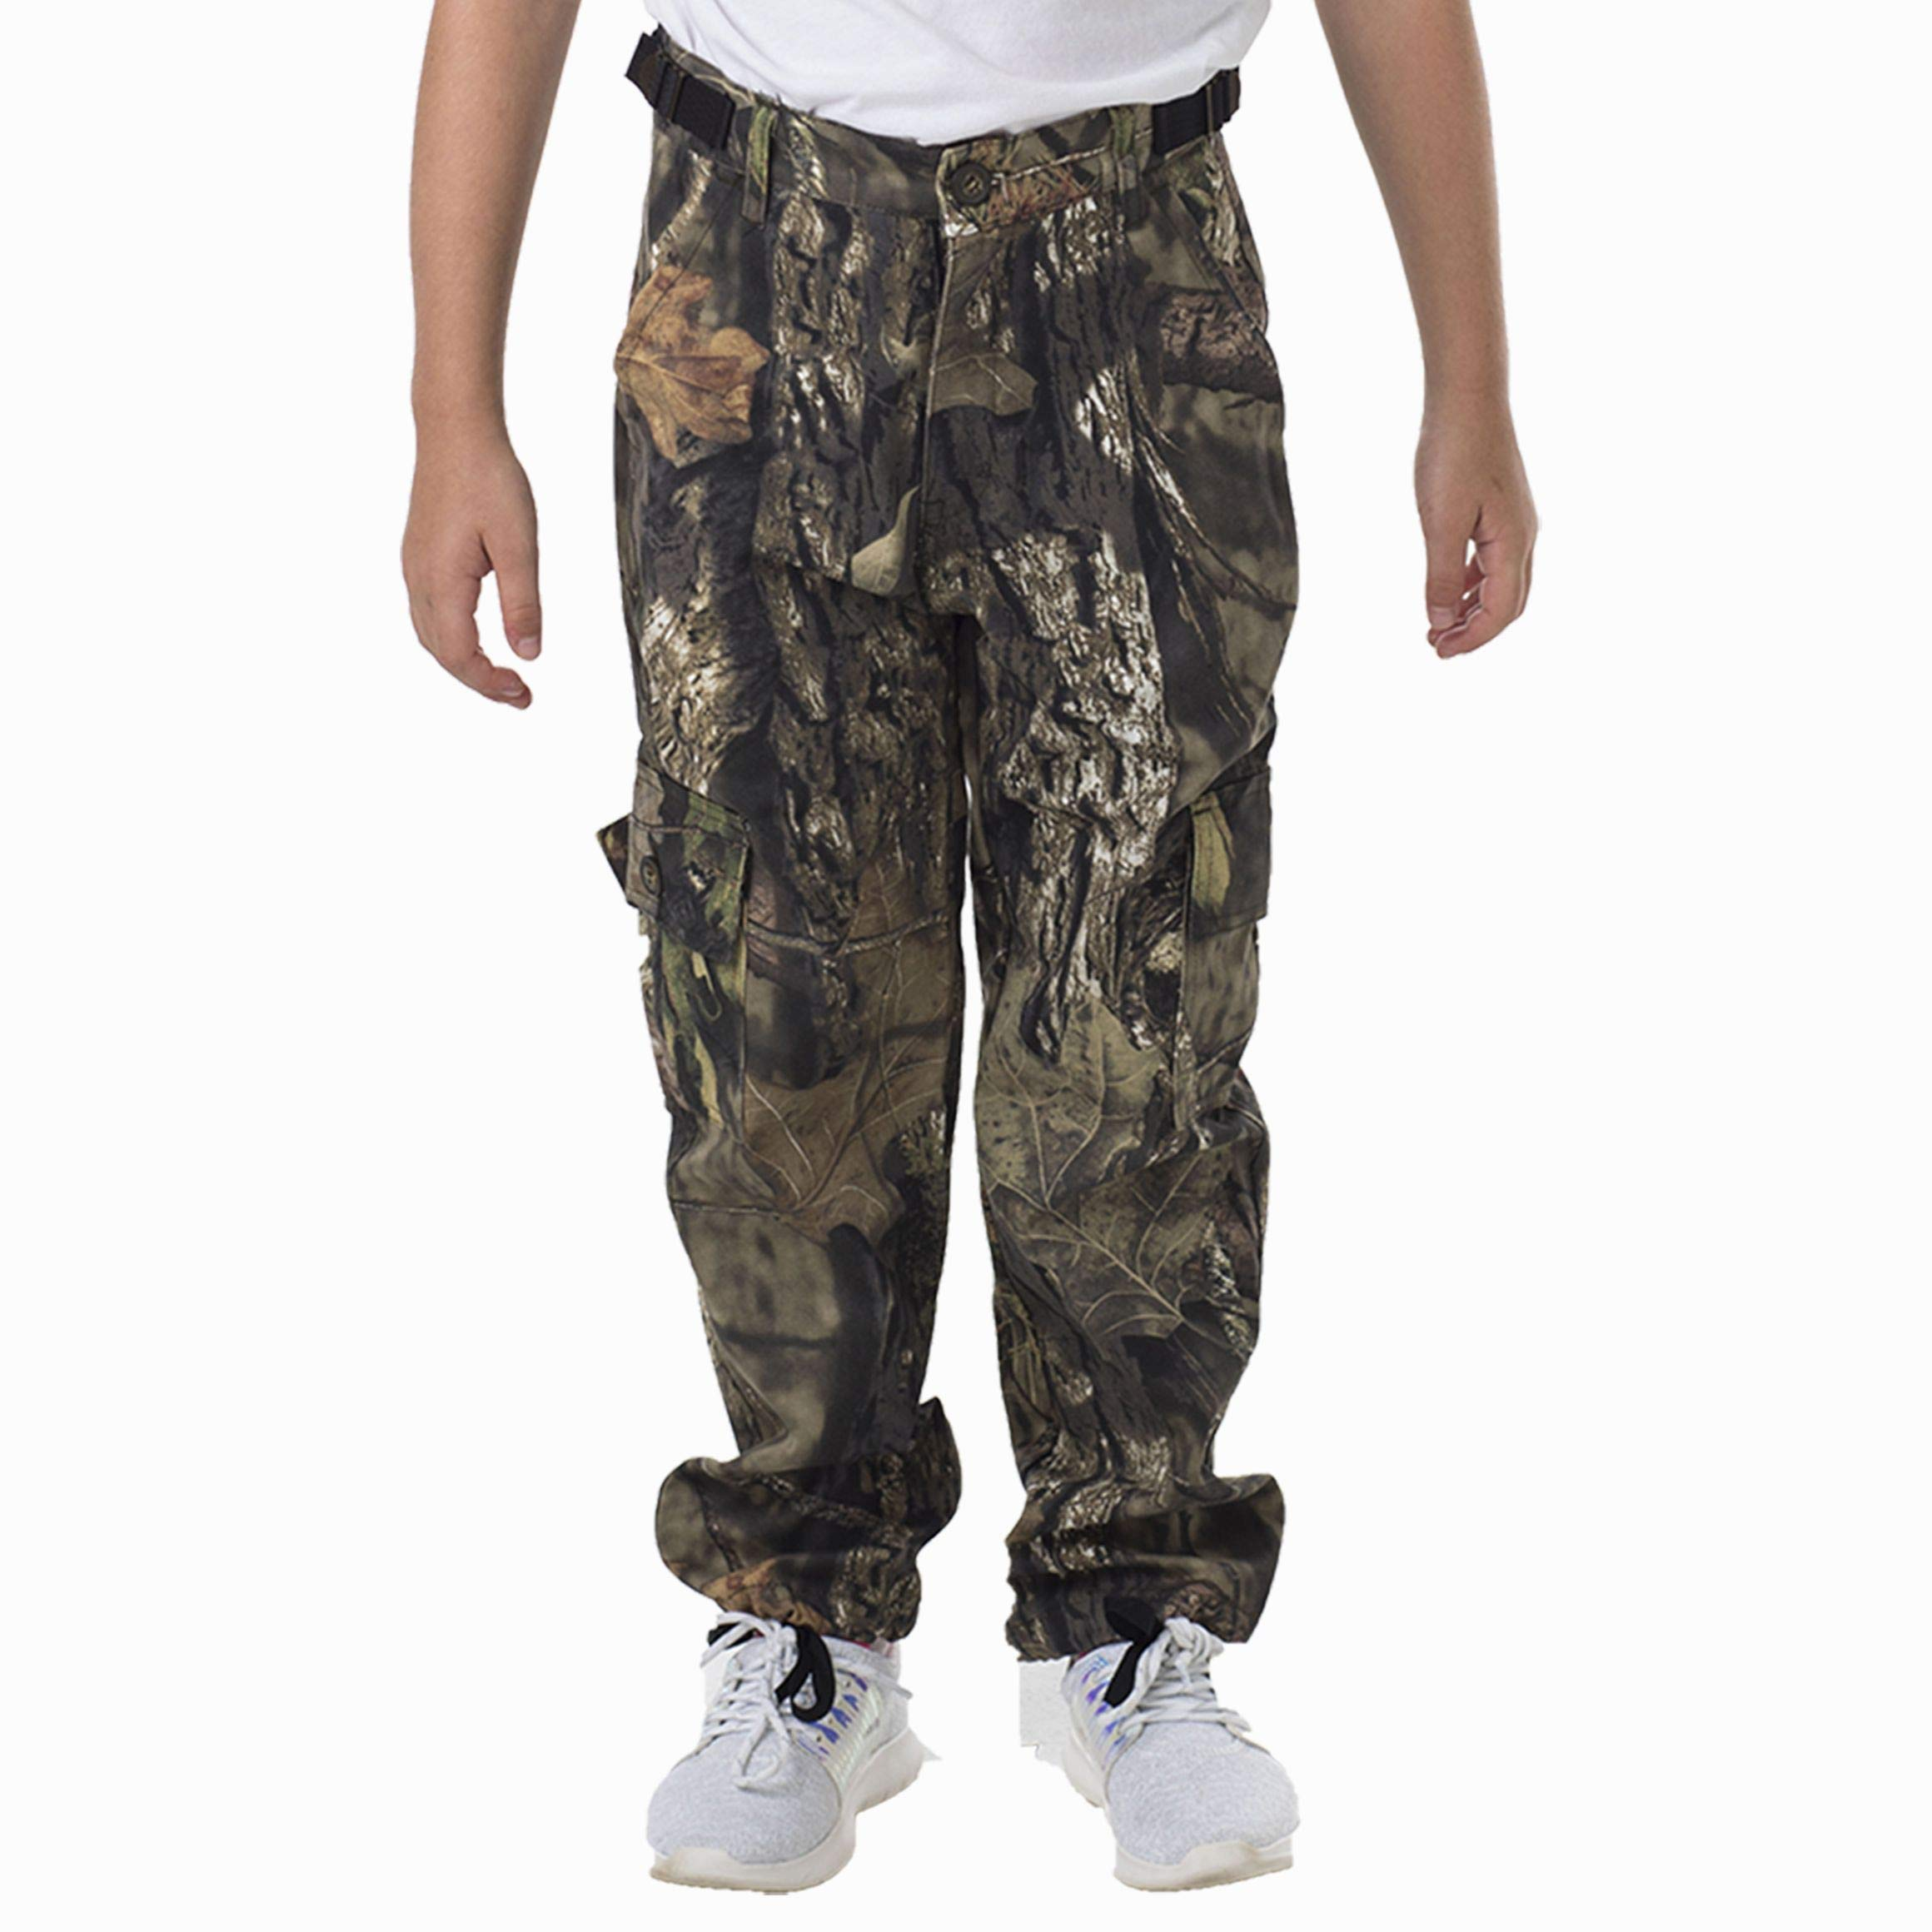 TrailCrest Youth Kids Camo Hunting Cargo Pants | 6 Pockets | Mossy Oak Break-Up Country by TrailCrest